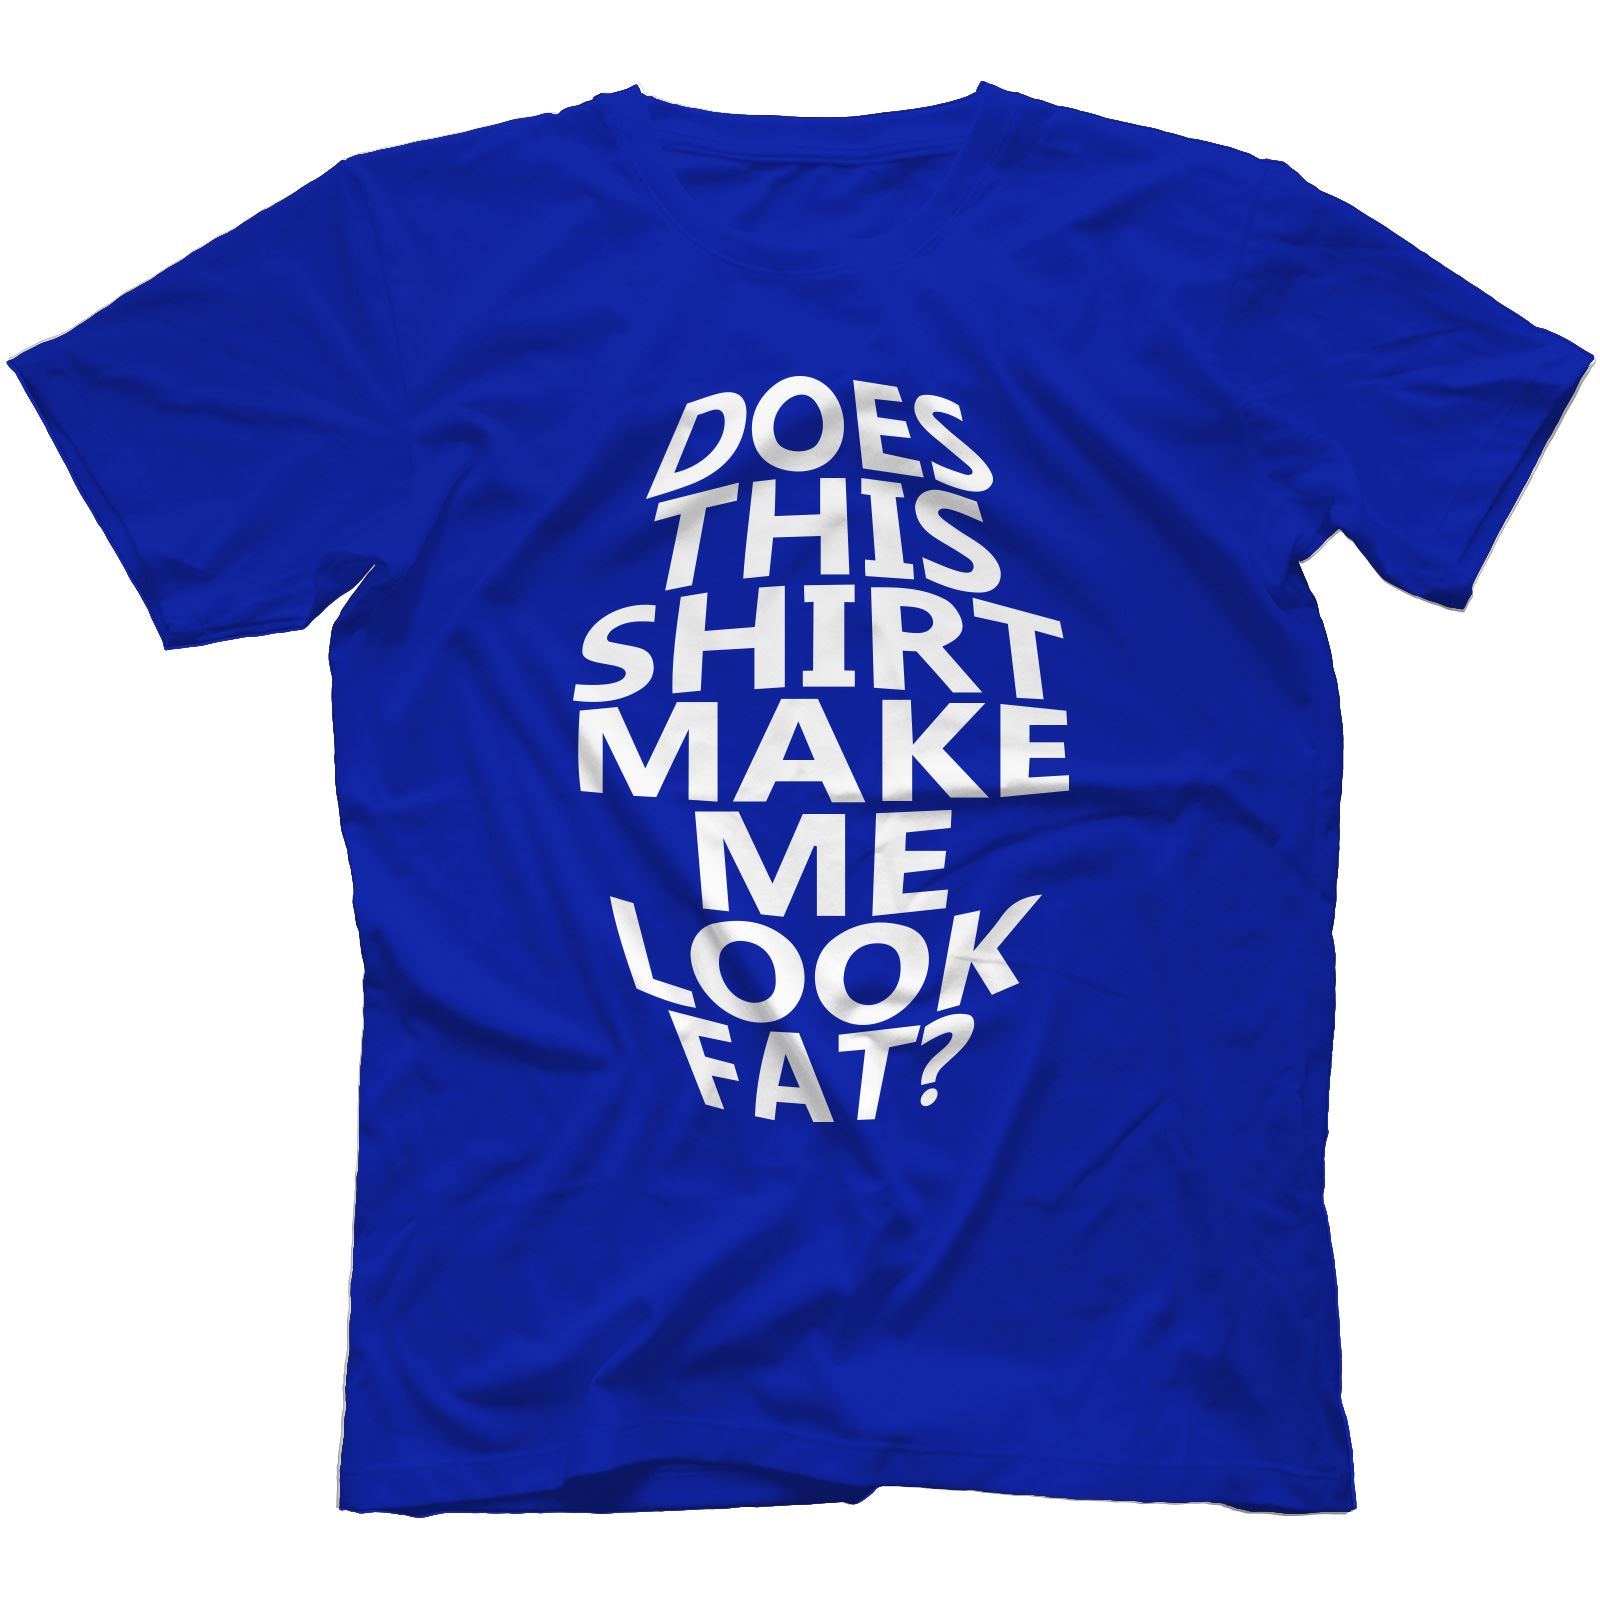 Does This Shirt Make Me Look Fat T-Shirt 100/% Cotton Funny Gift PresentNavy Blue